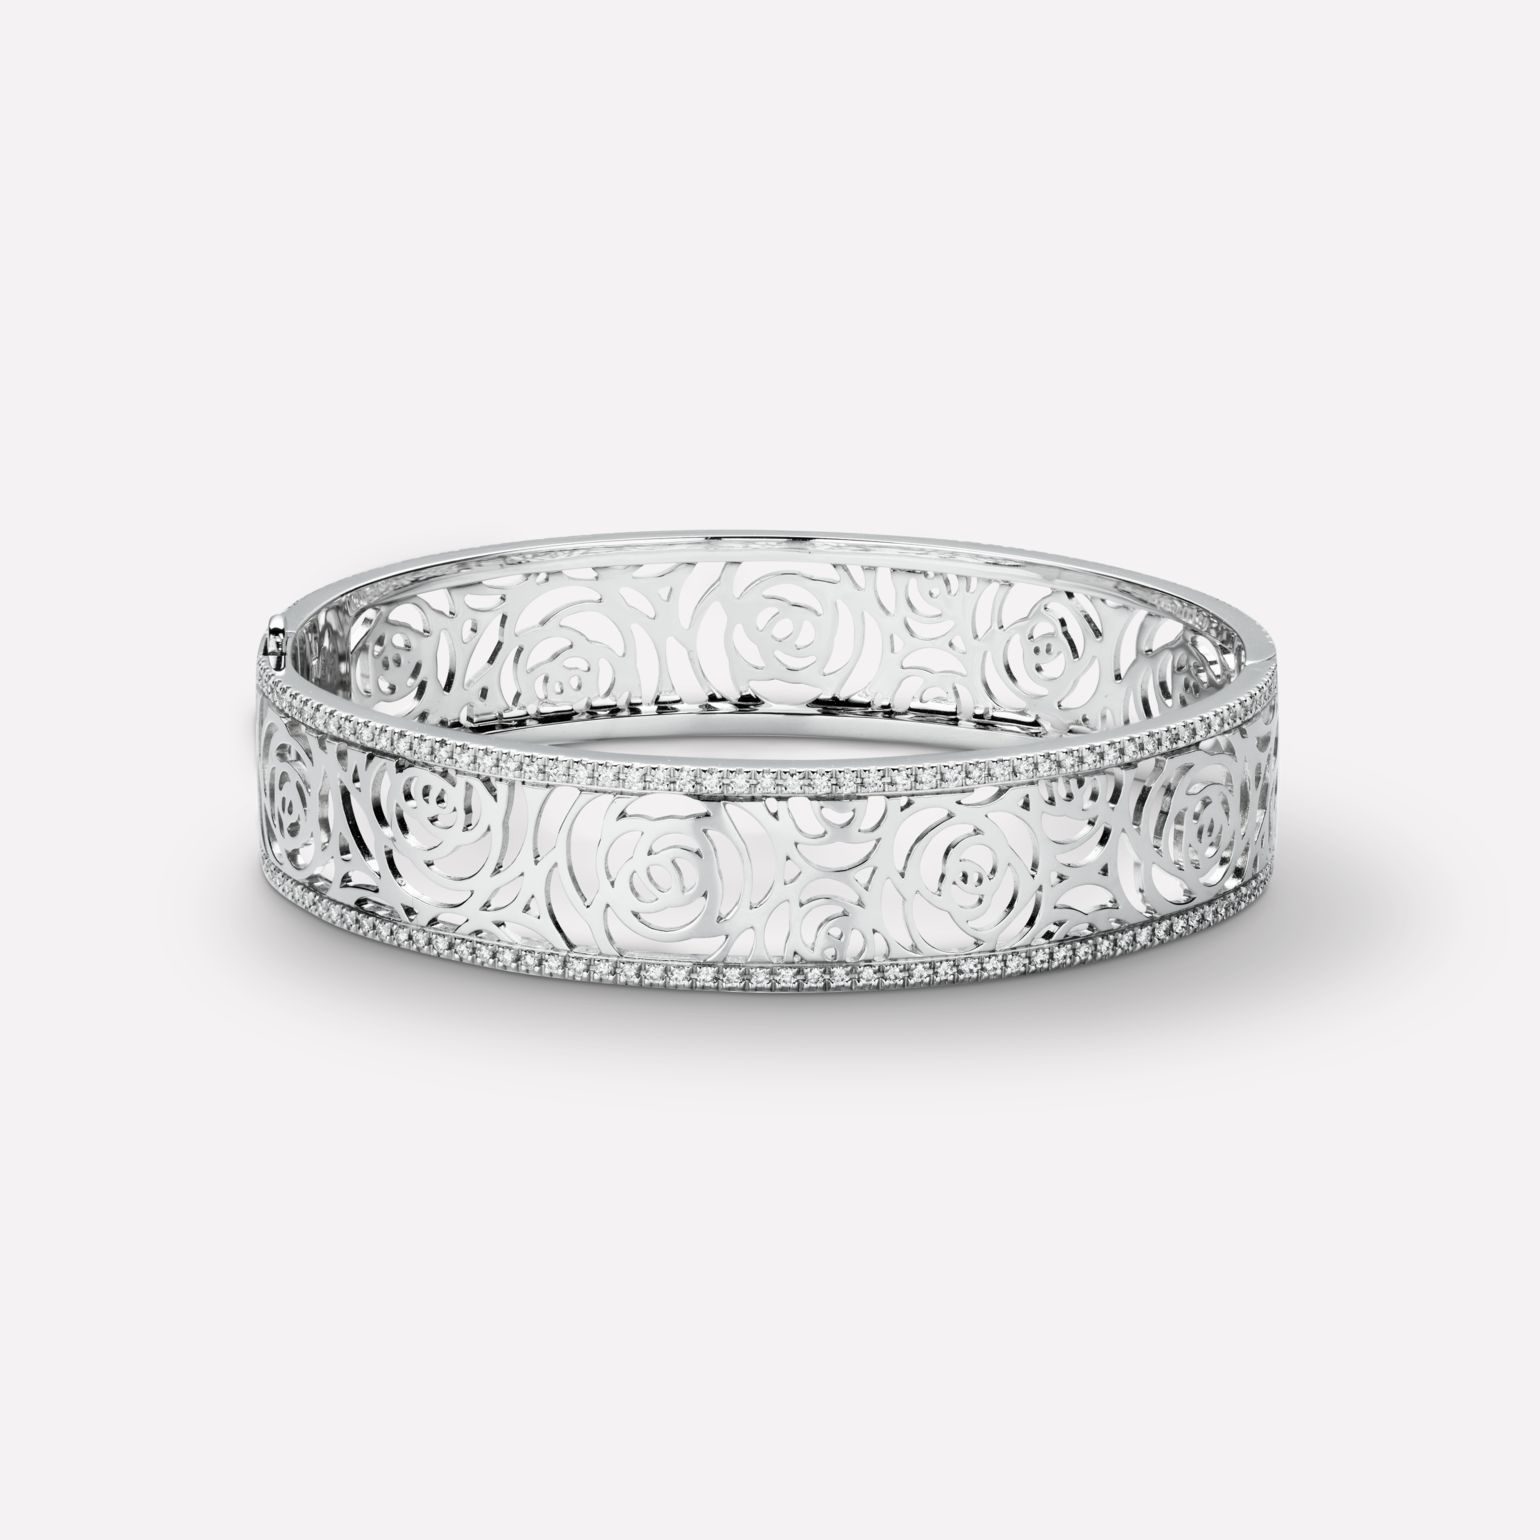 Camélia bracelet Camélia Ajouré bangle, in 18K white gold and diamonds